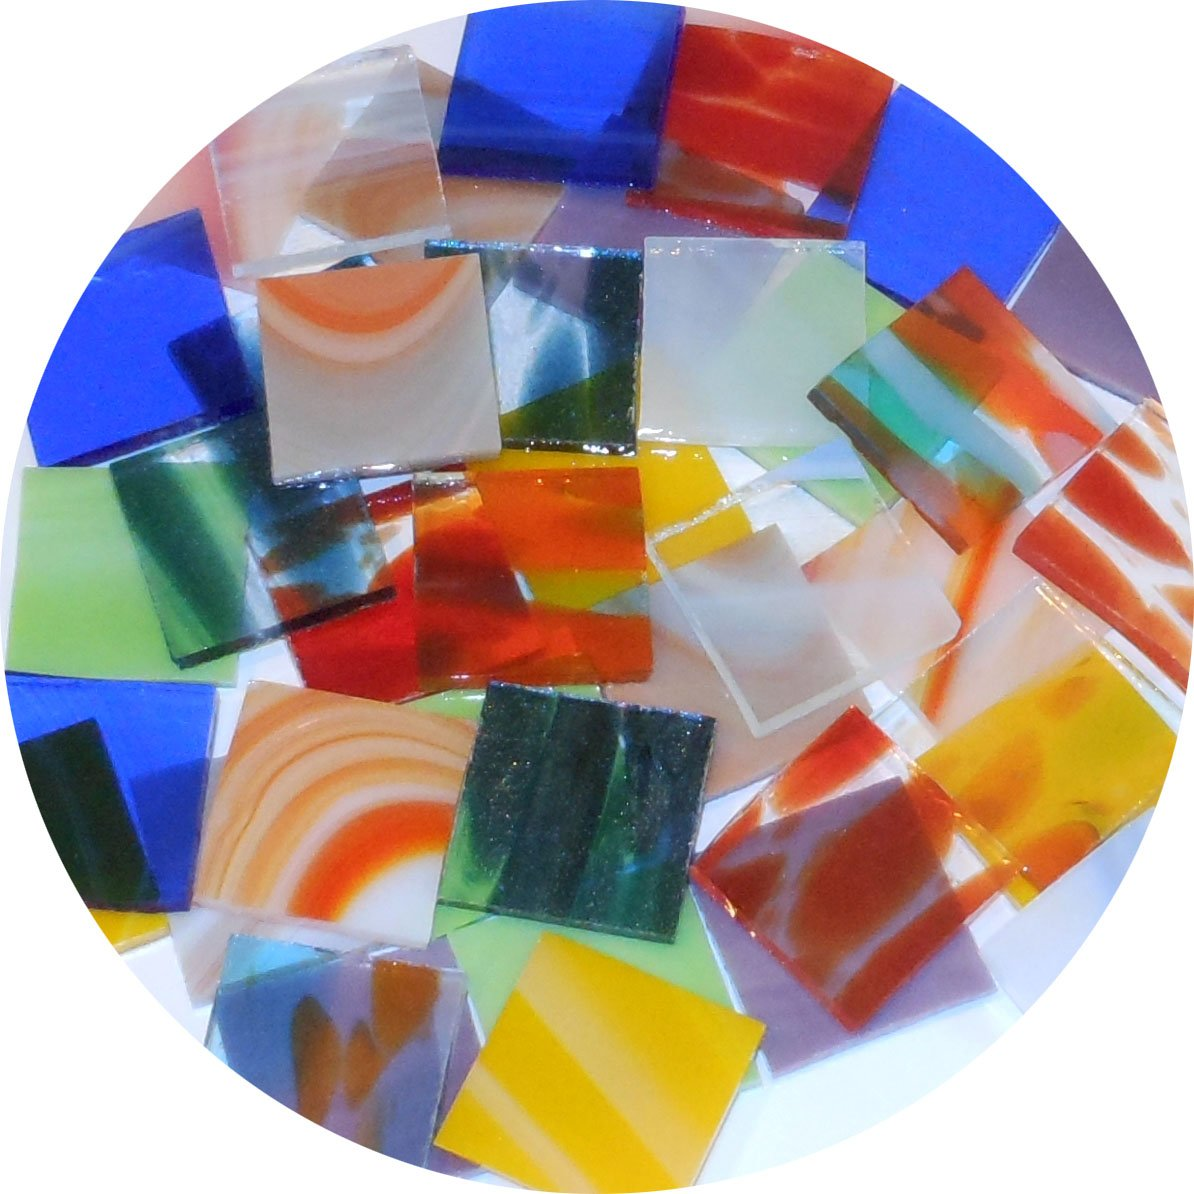 Spectrum System 96 Glass Specialty Pre-Cut 1-Inch Square Mix - Larger 18 Piece Pack - 96COE New Hampshire Craftworks